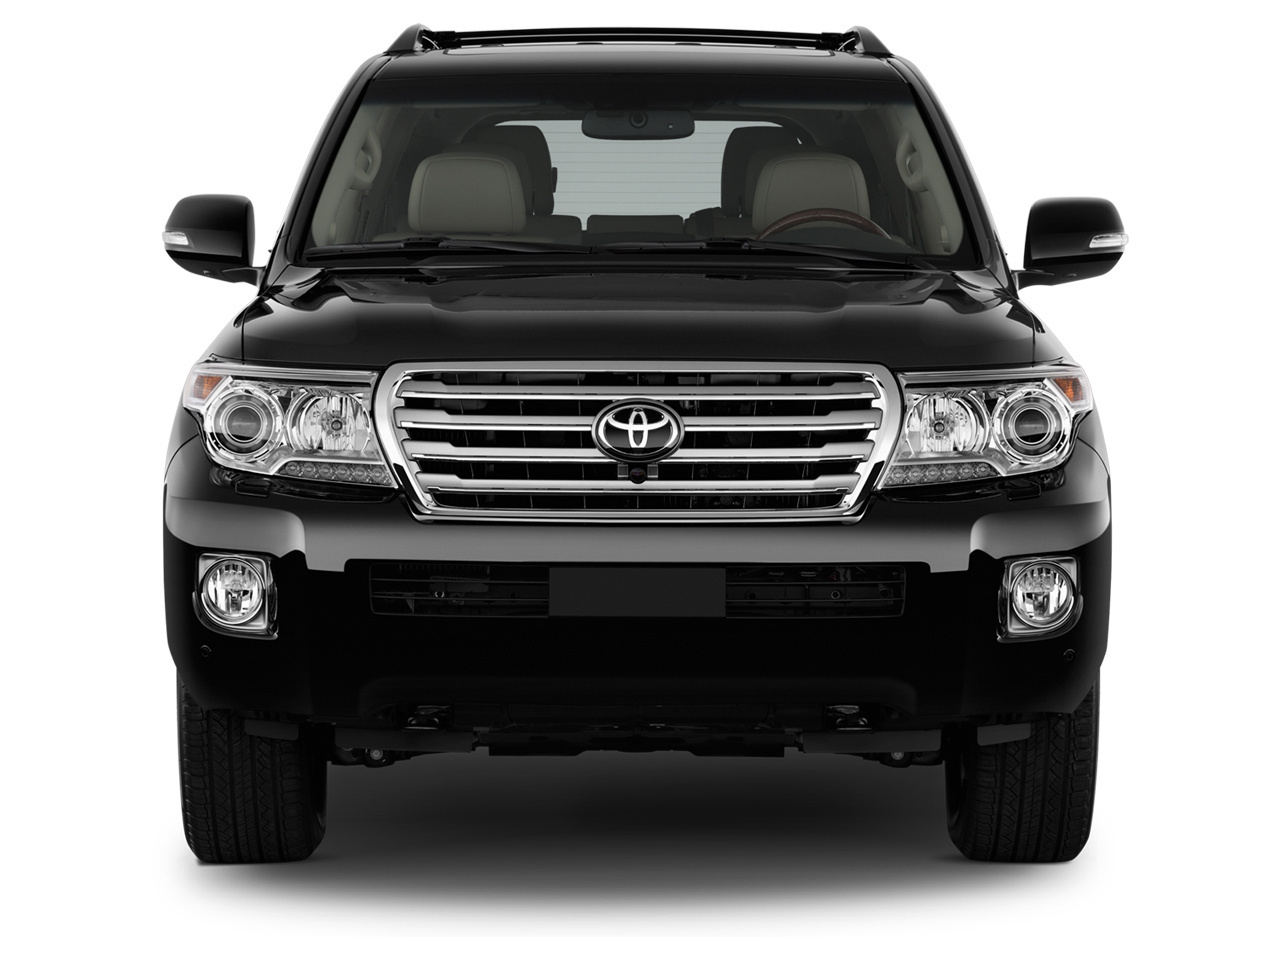 Picture of 2015 Toyota Land Cruiser